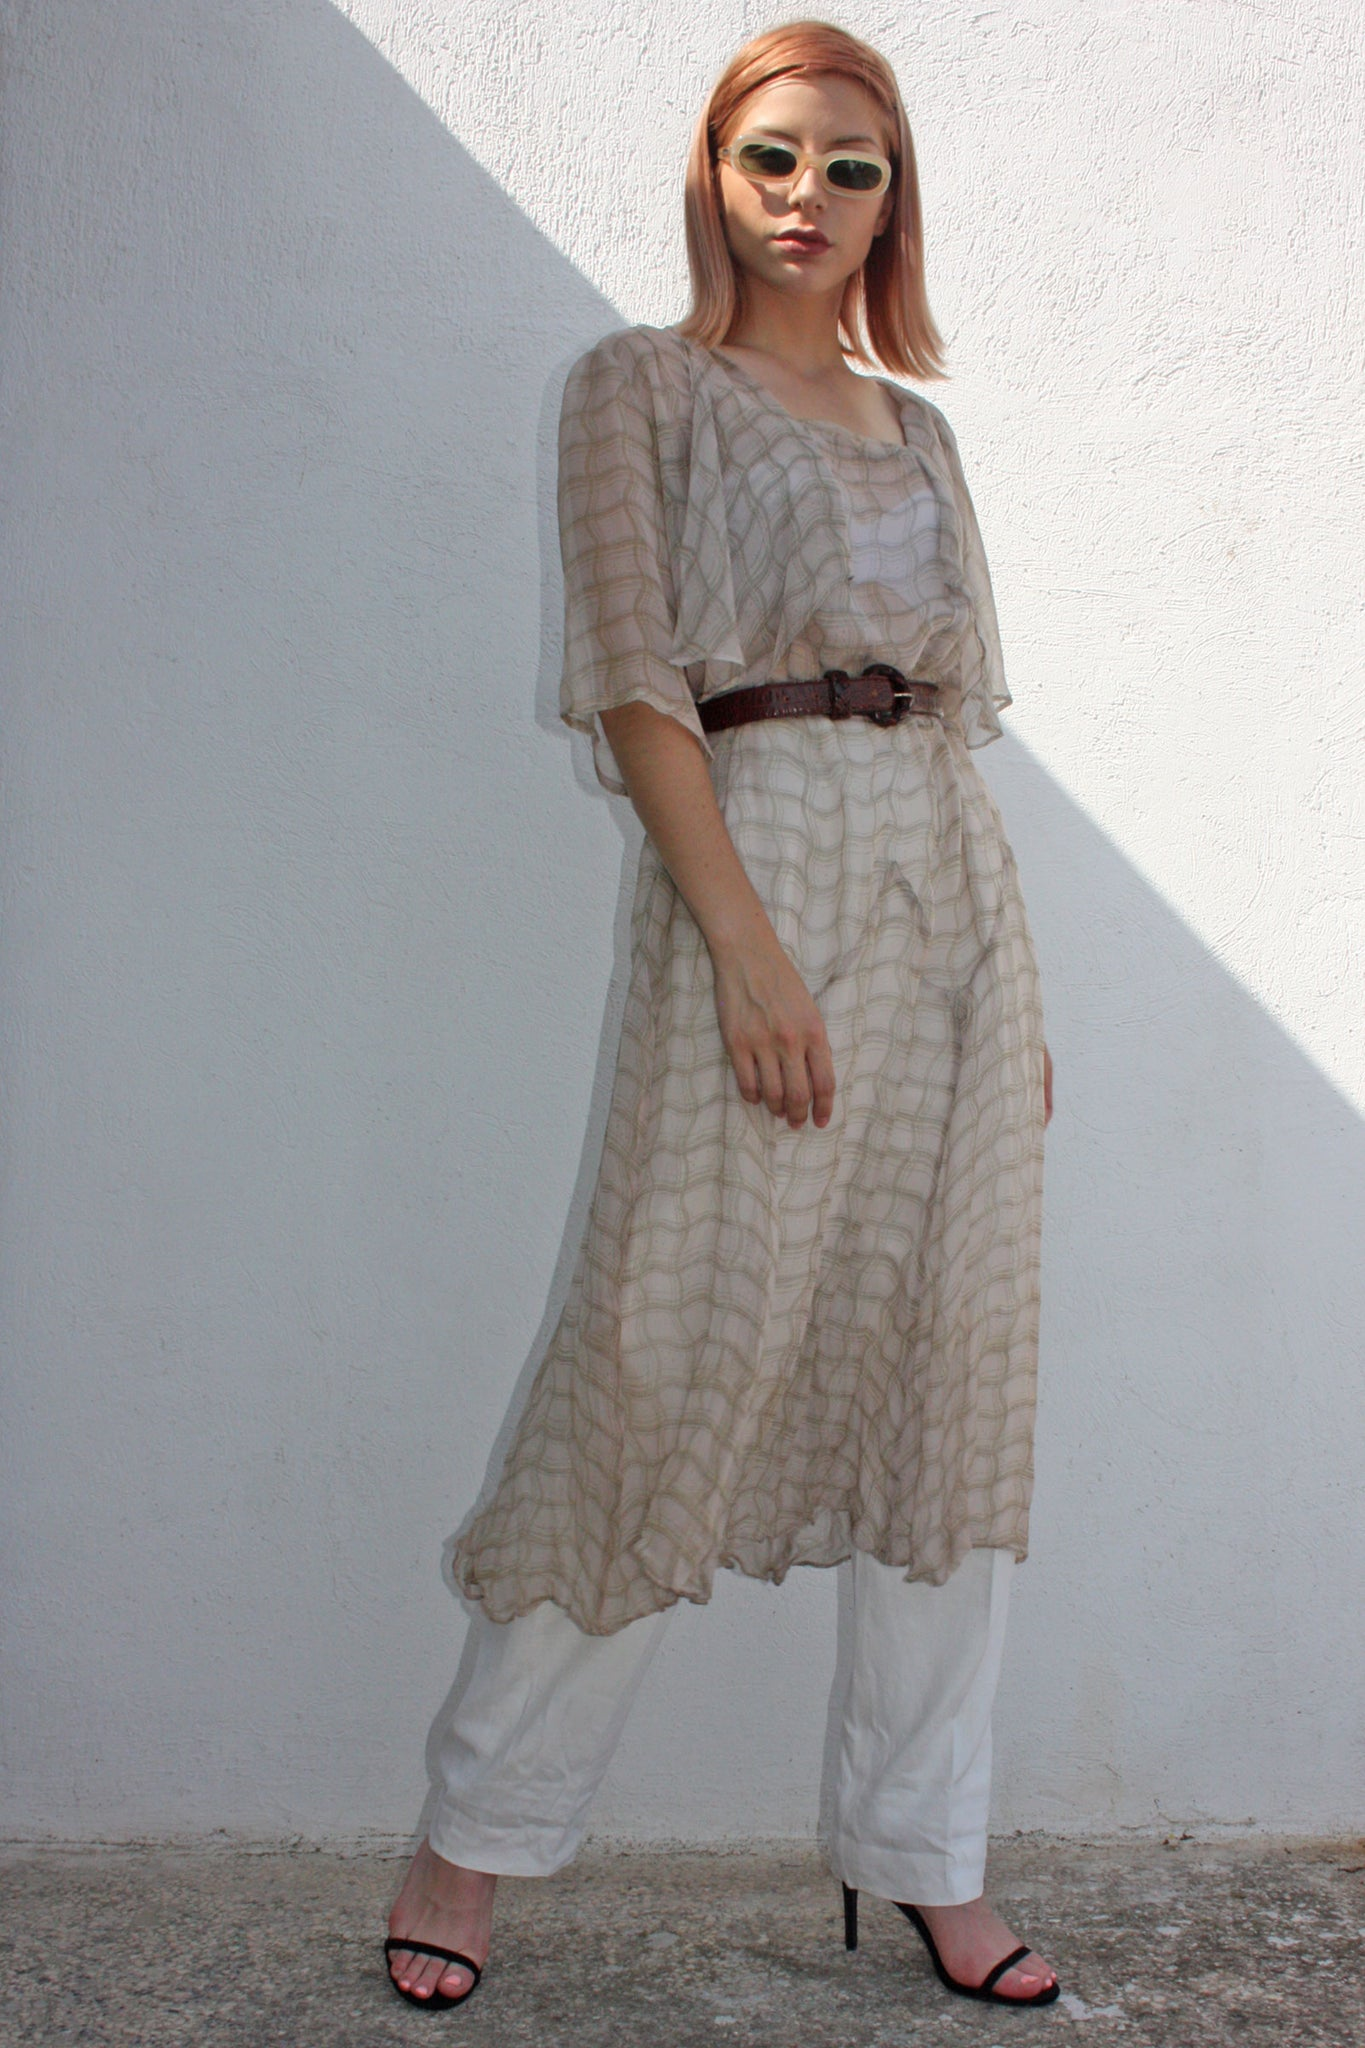 1930's vintage chiffon dress - Shop SoLovesVintage